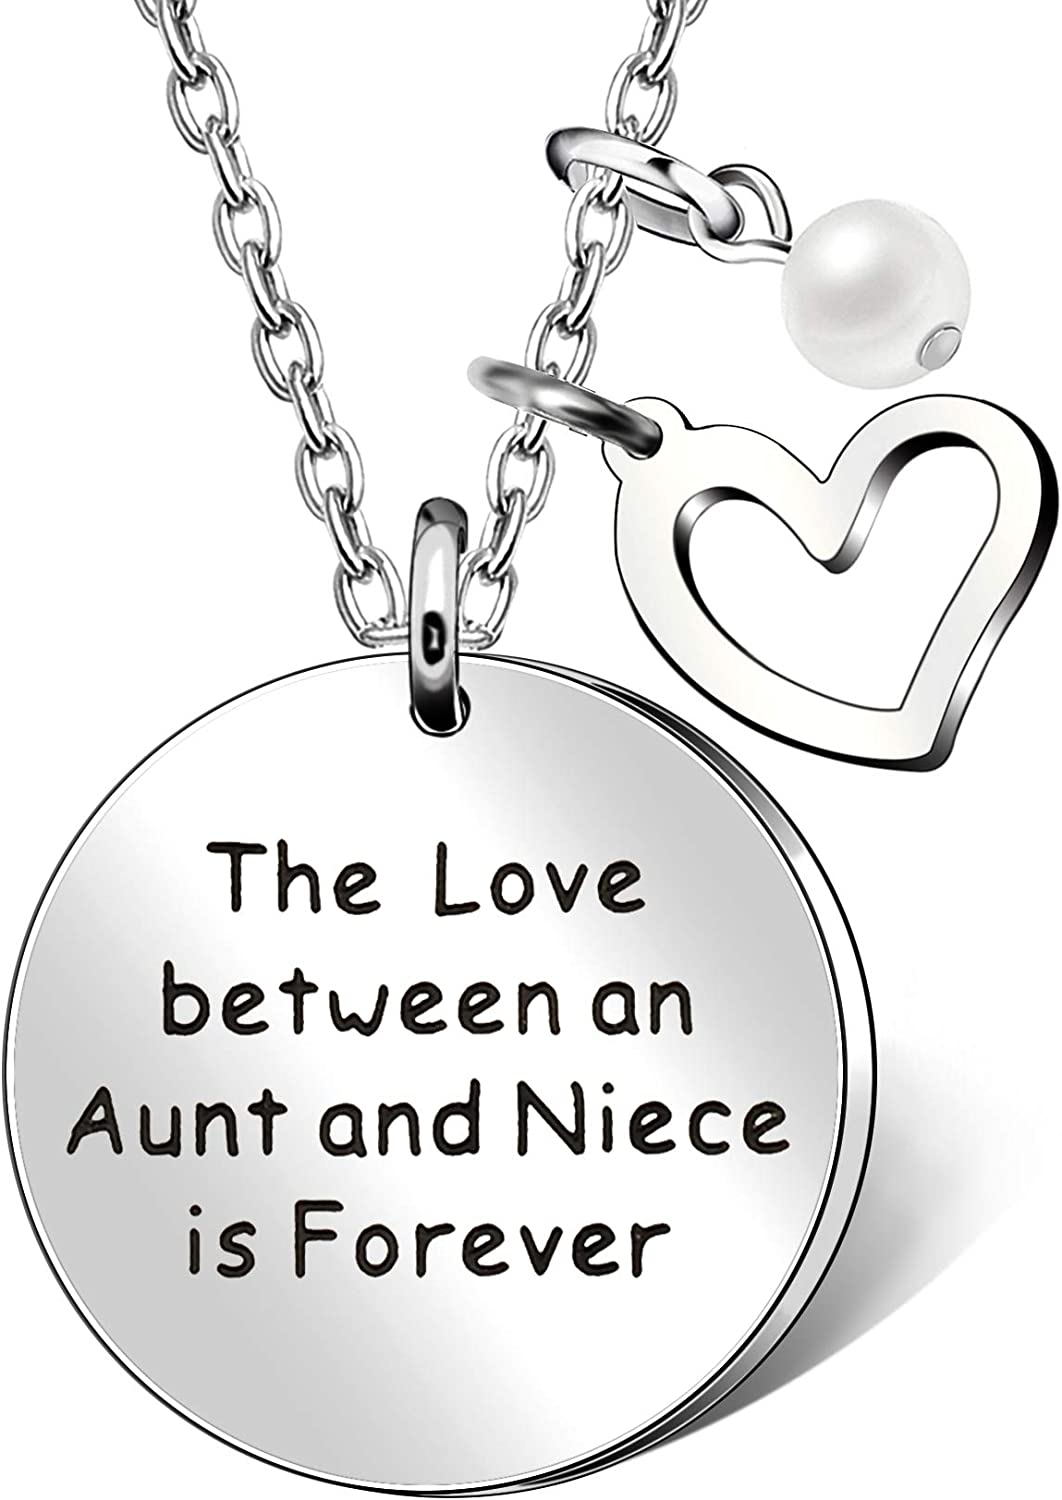 Aunt Niece Pendant Necklace Love Heart Pearl - The Love Between an Aunt and Niece is Forever